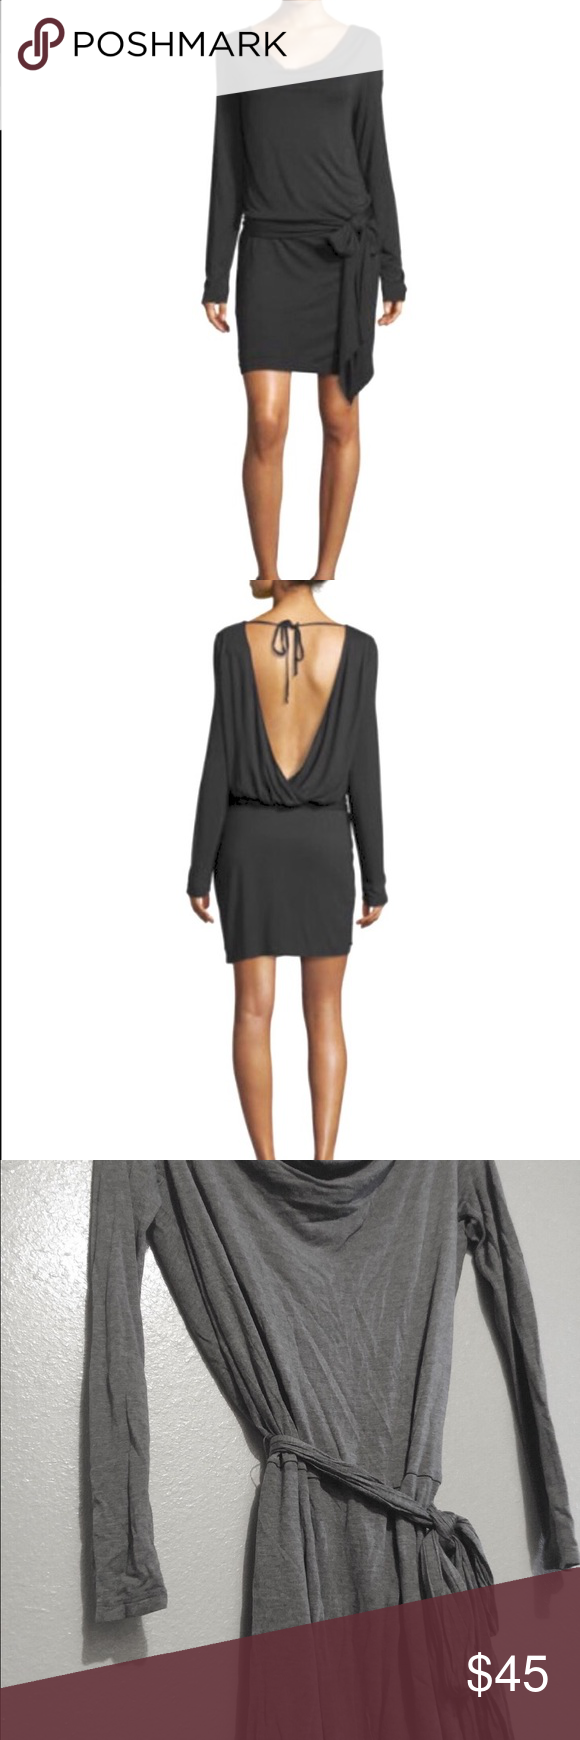 Haute Hippie sexy backless shirt dress with wrap This super sexy shirt dress is light weight and very comfortable. It has a slight draping neckline and a sexy plunging back. The dress ties at the neck and also has a matching belt that can be tied on the front, back or side for an extra touch of class. It has only been worn one time and has no imperfections. Needs to be ironed as its a bit wrinkled. Haute Hippie Dresses Mini